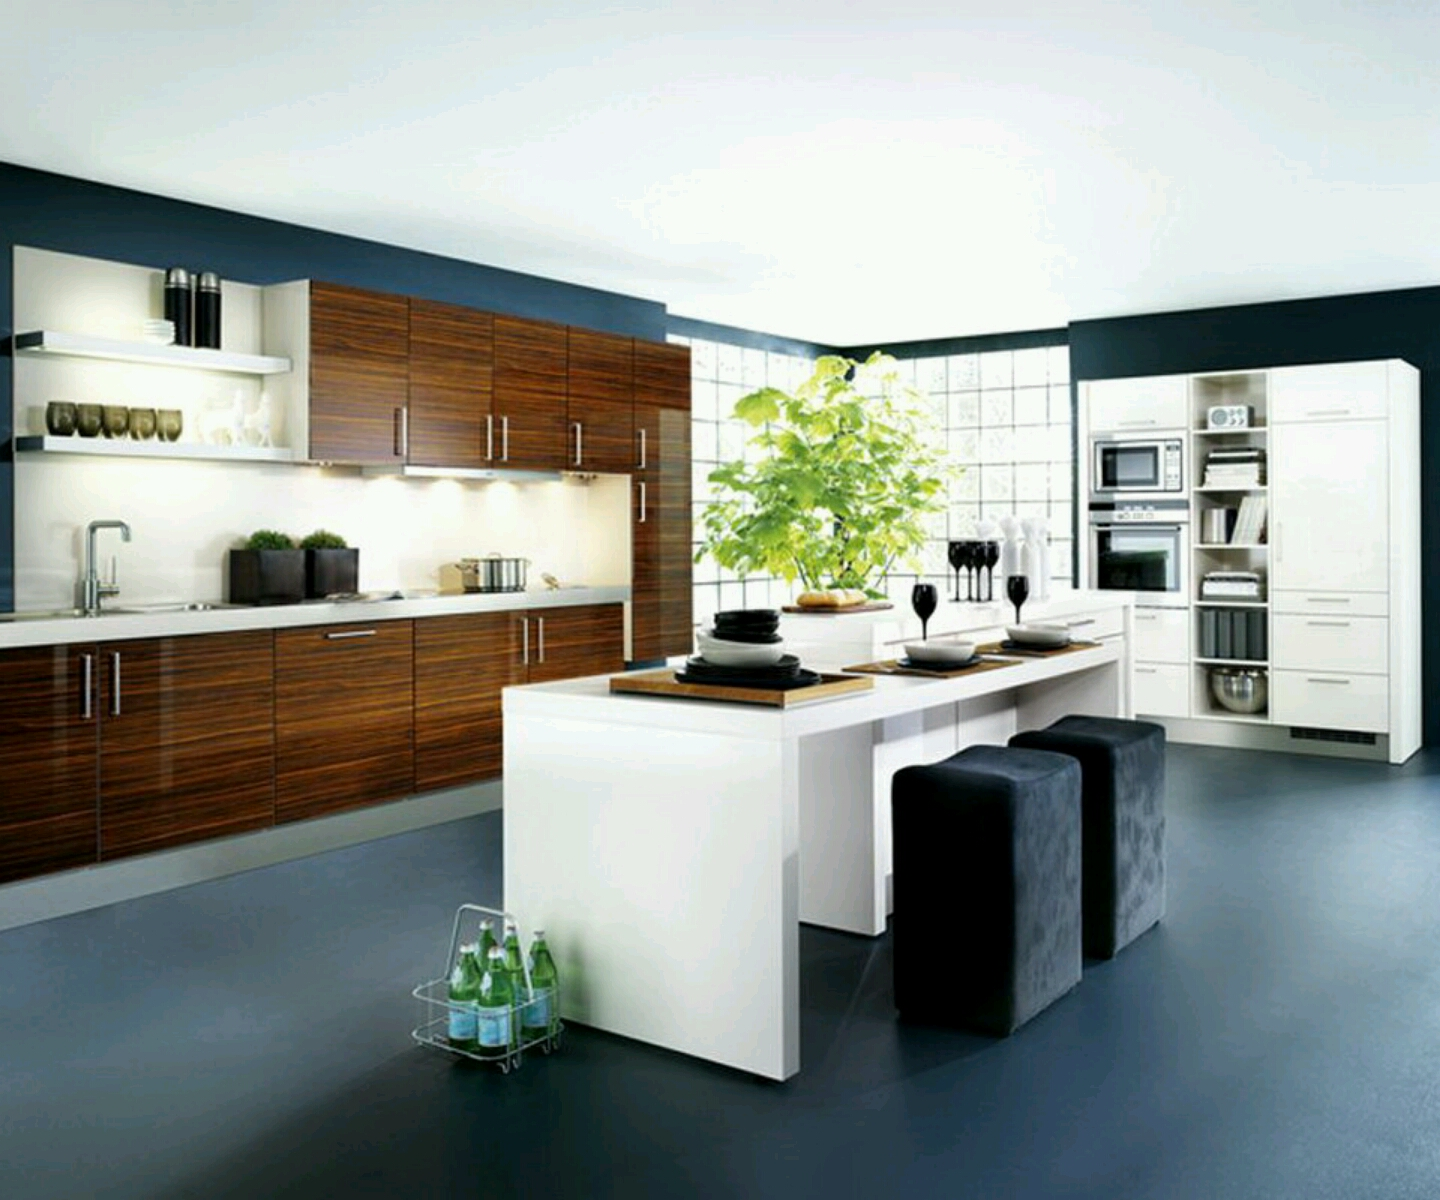 New home designs latest kitchen cabinets designs modern for Homey kitchen designs